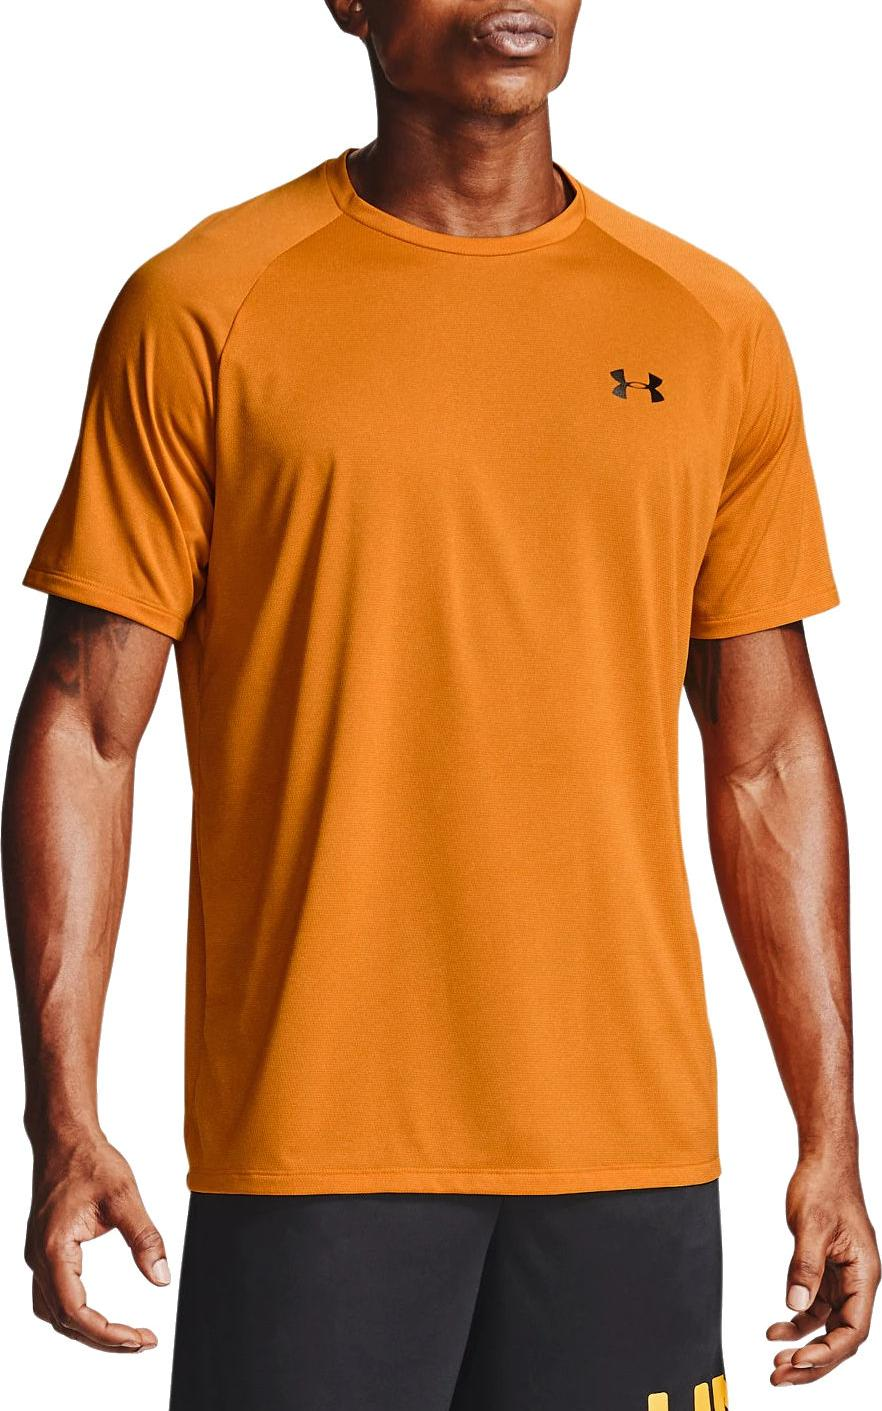 Tričko Under Armour UA Tech 2.0 SS Tee Novelty